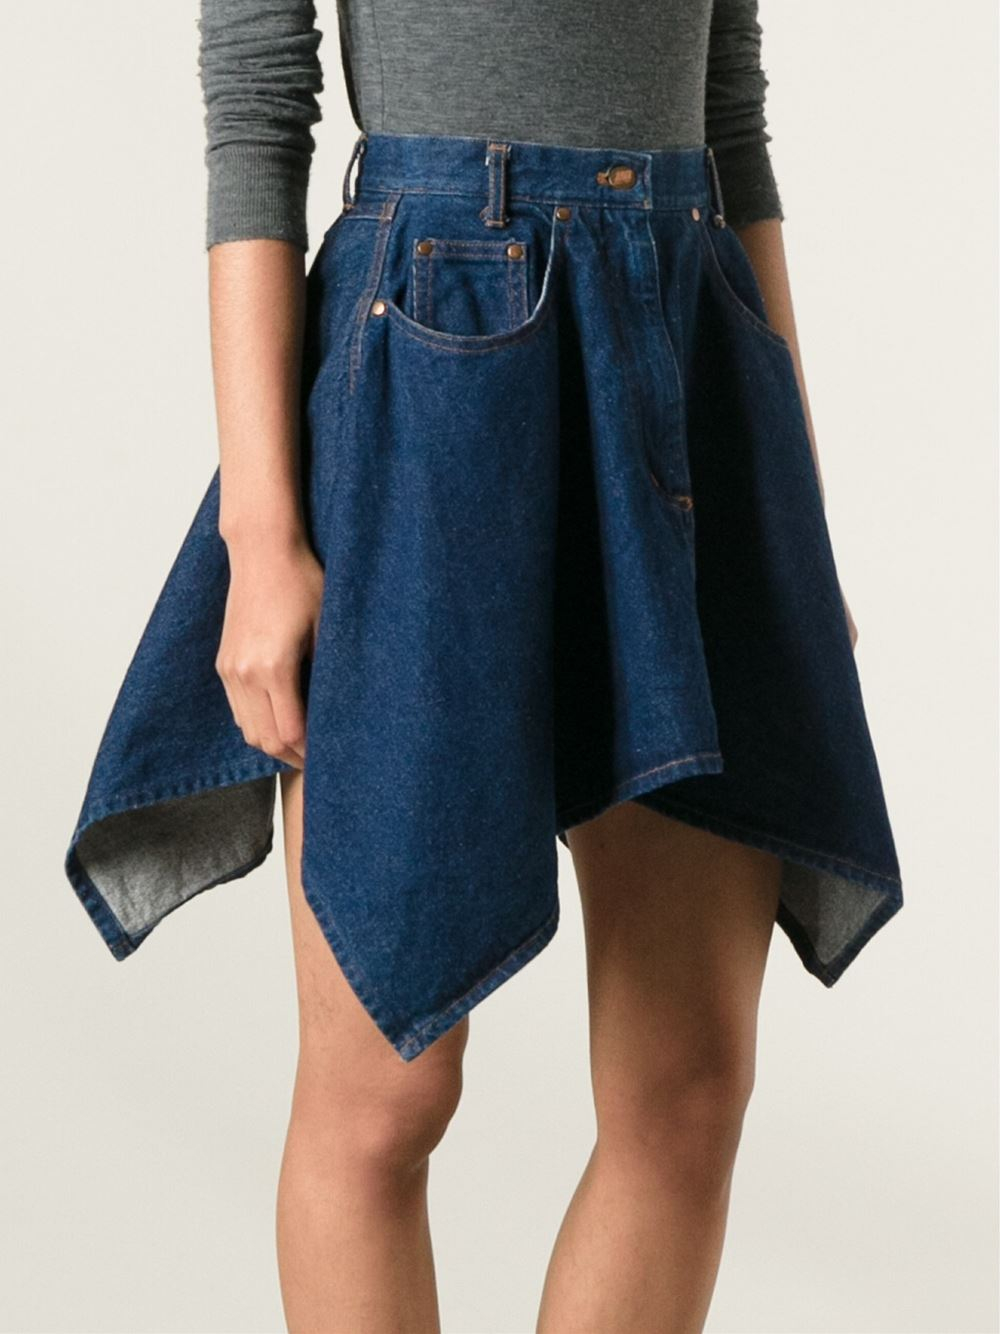 Jean paul gaultier Flared Denim Skirt in Blue | Lyst